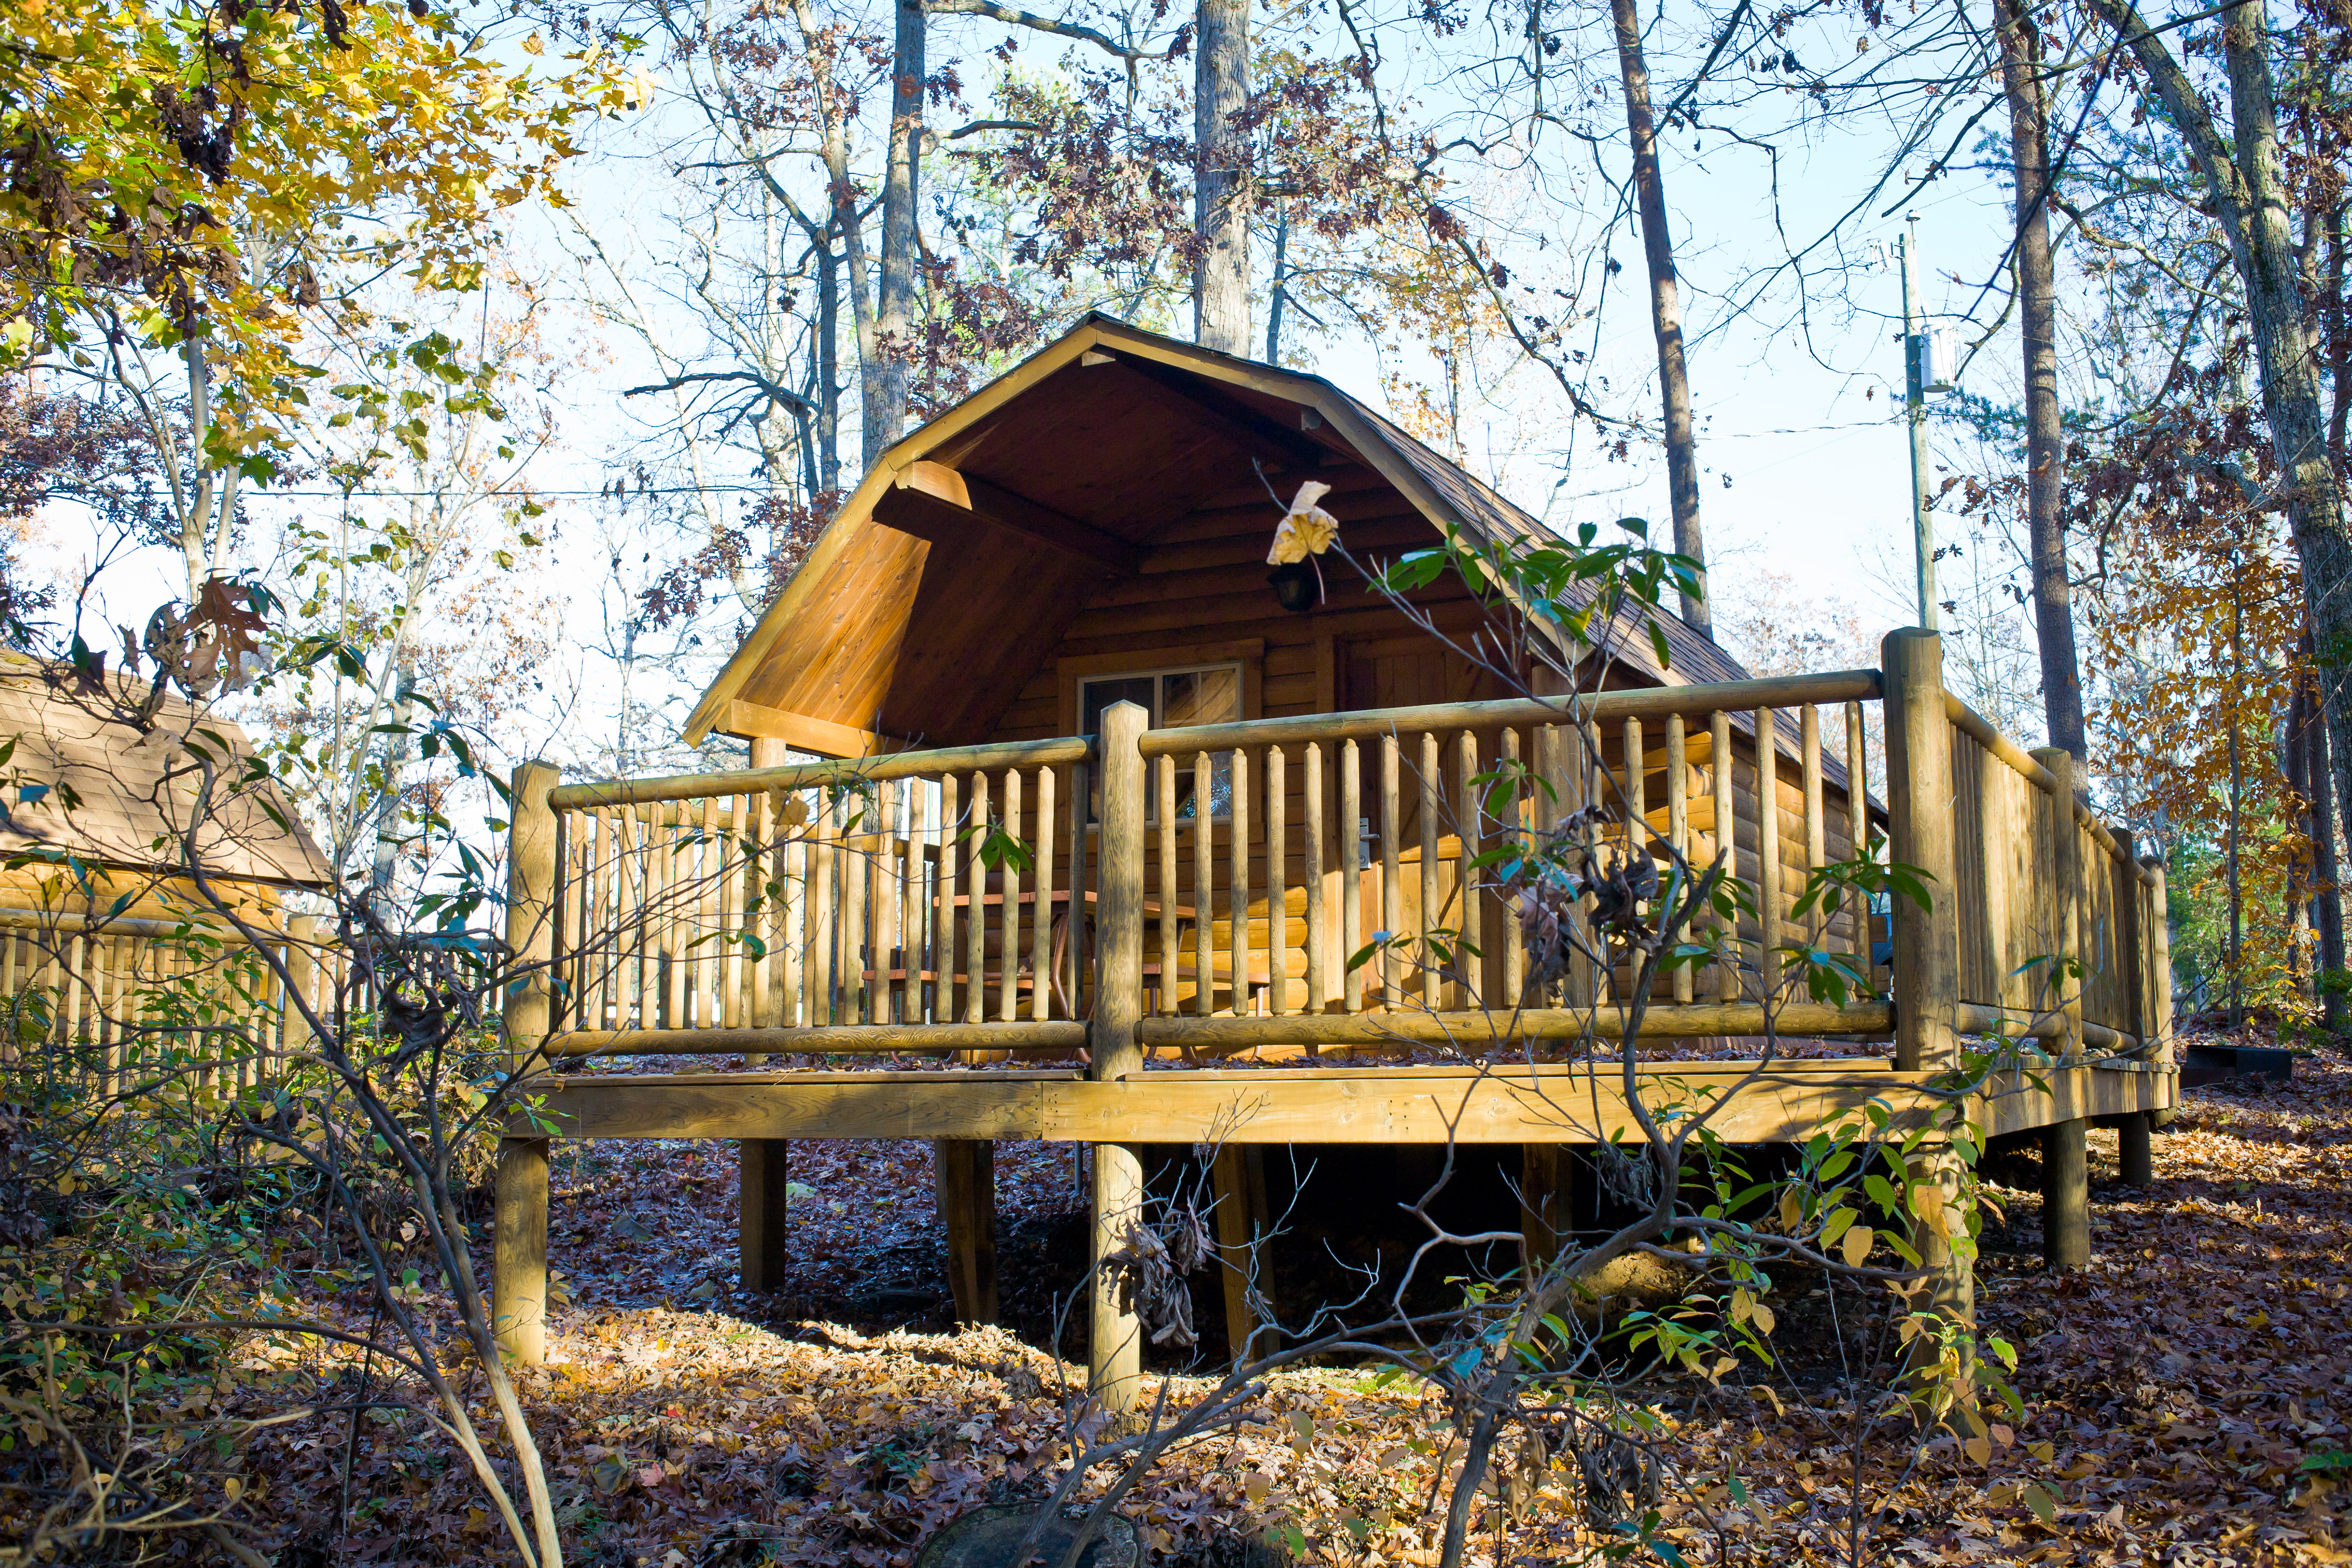 forest rentals a sleeping cabin camps are historic state prince va can multiple rented in by five hall dining parks cabins william glance national be that at with virginia consist of park there